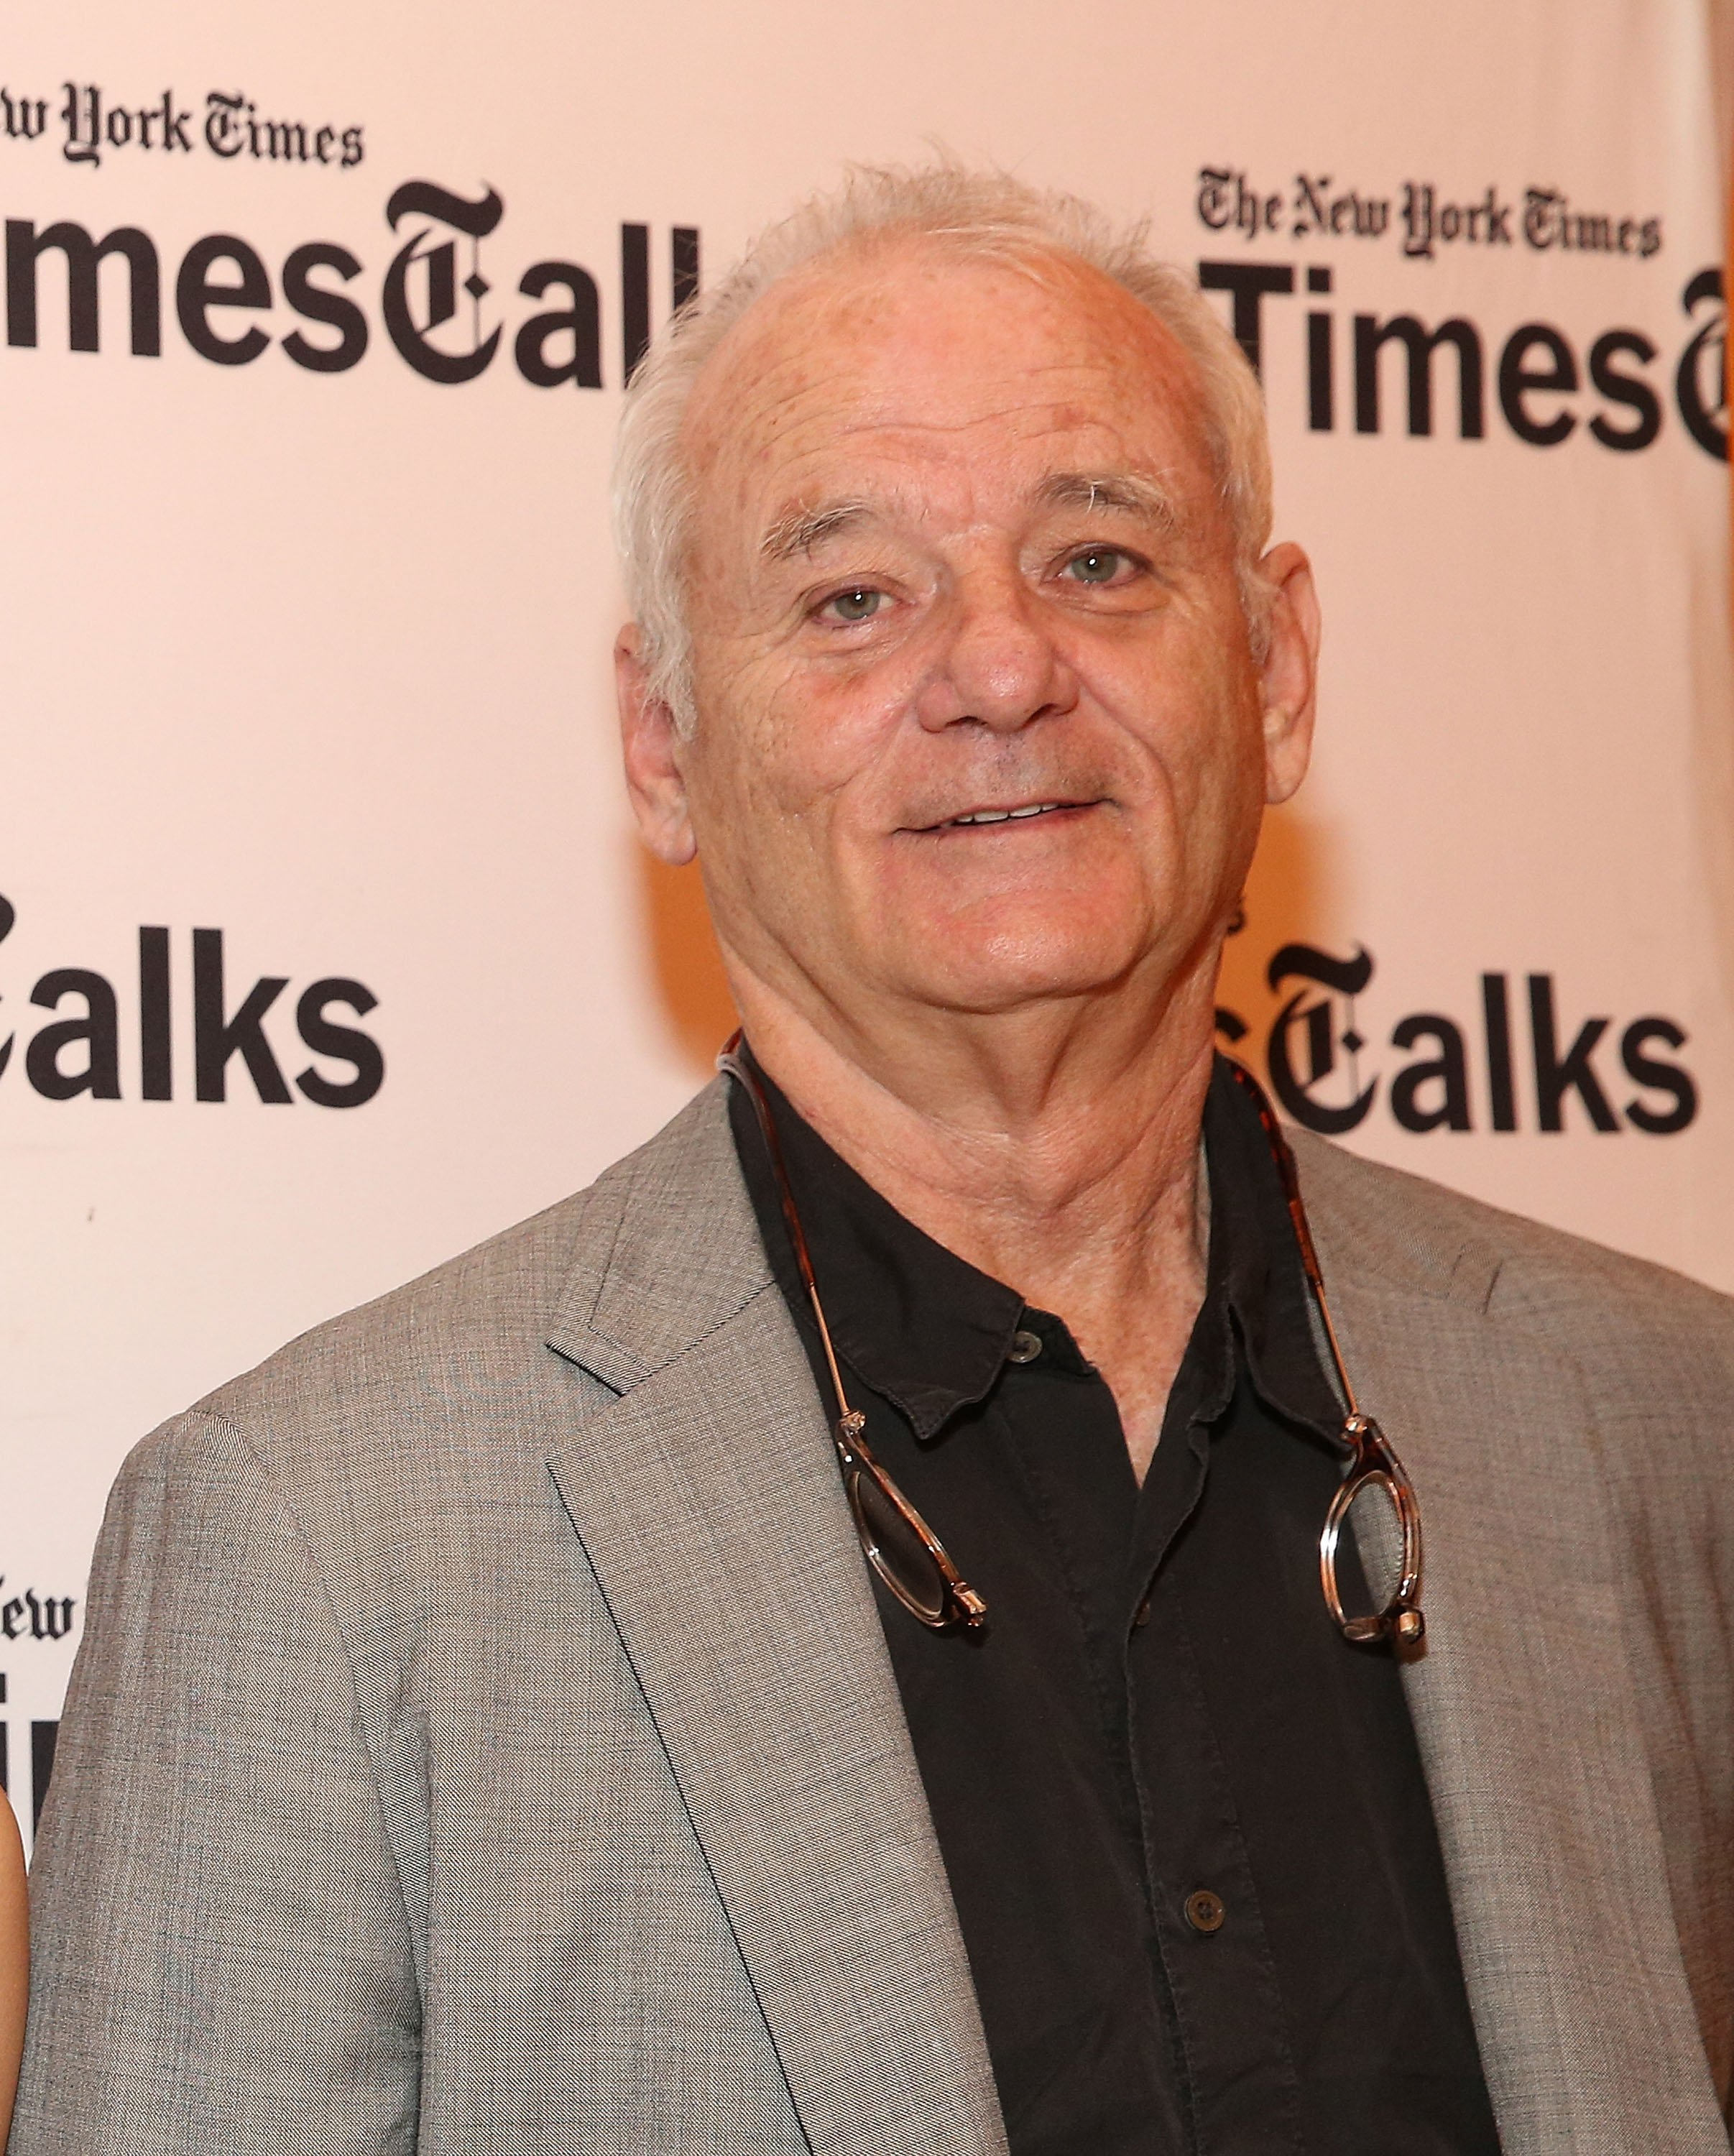 Bill Murray attends TimesTalks Presents event in New York City on June 29, 2017 | Photo: Getty Images